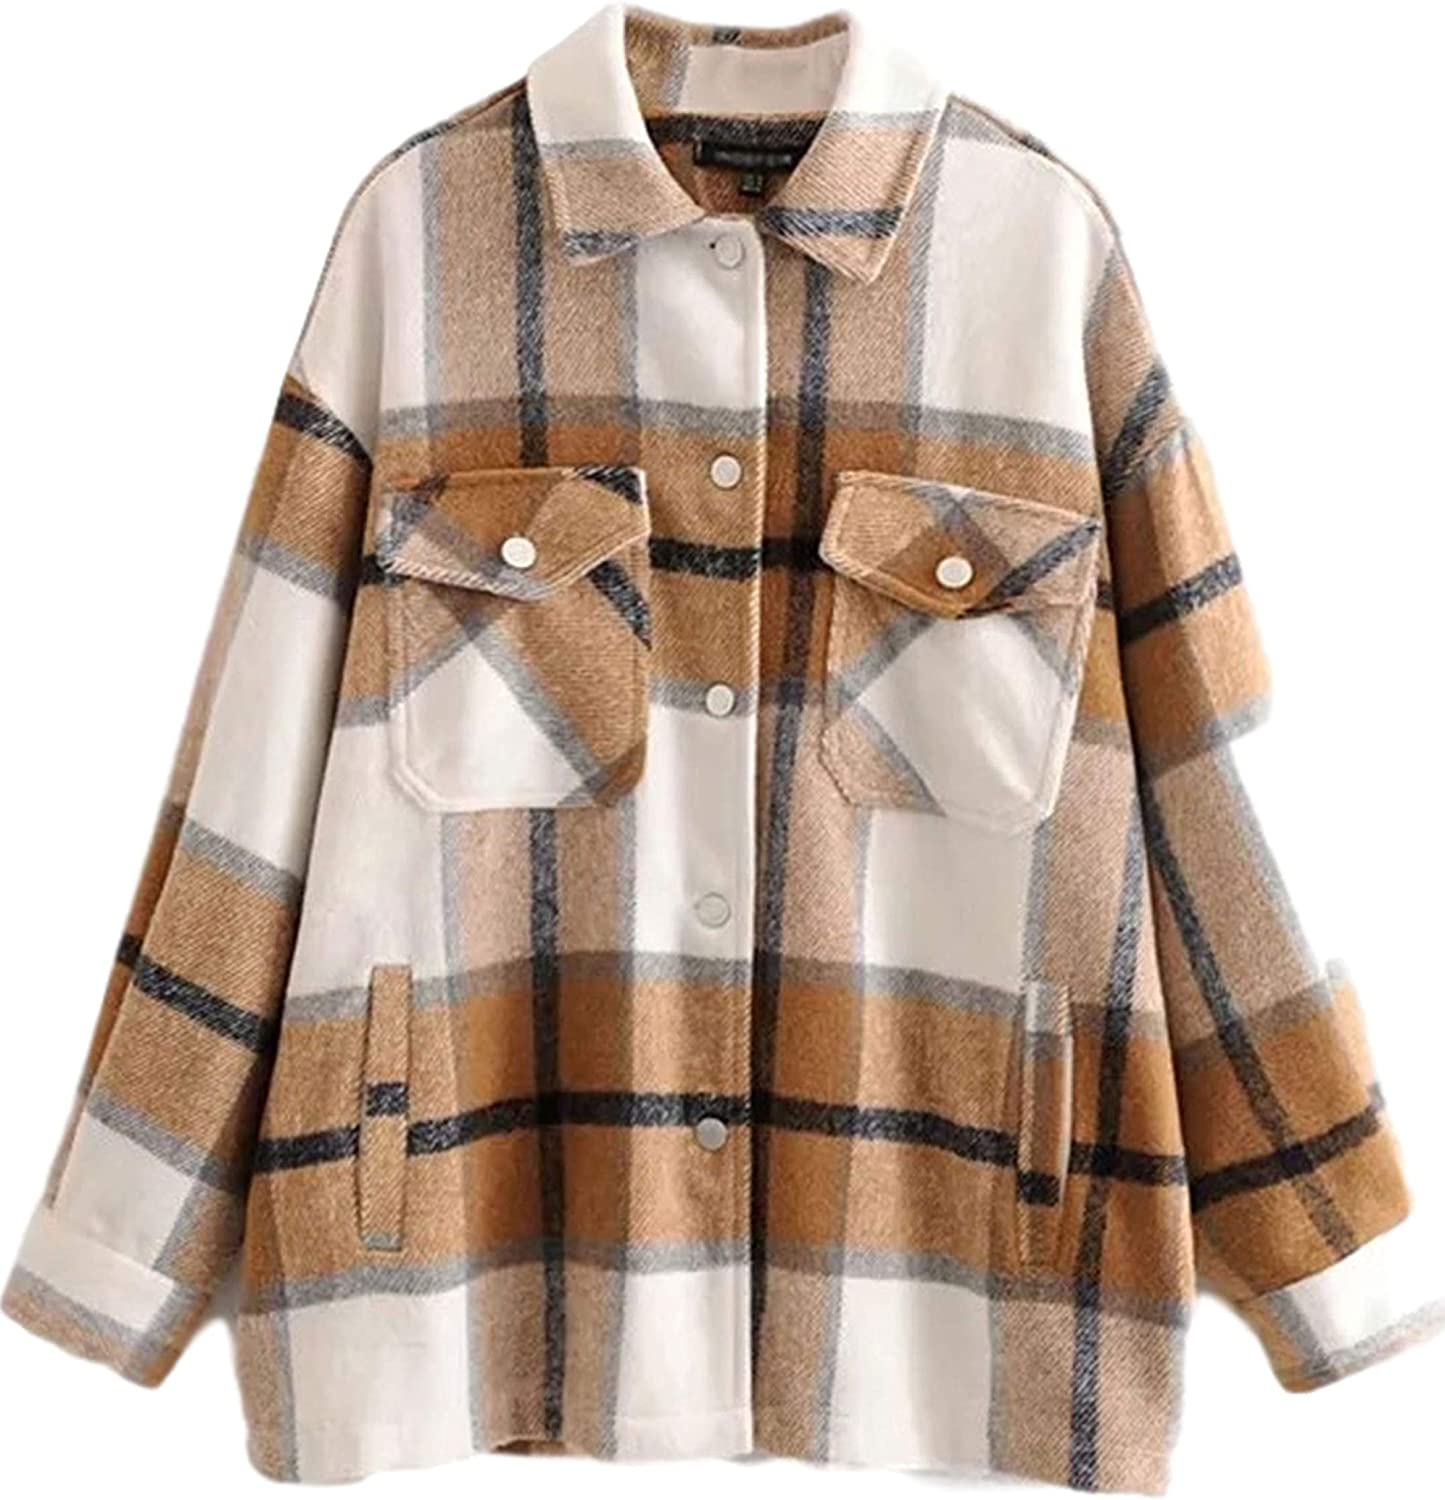 Gihuo Womens Casual Loose Button Down Wool Blend Plaid Shirt Jacket Shacket